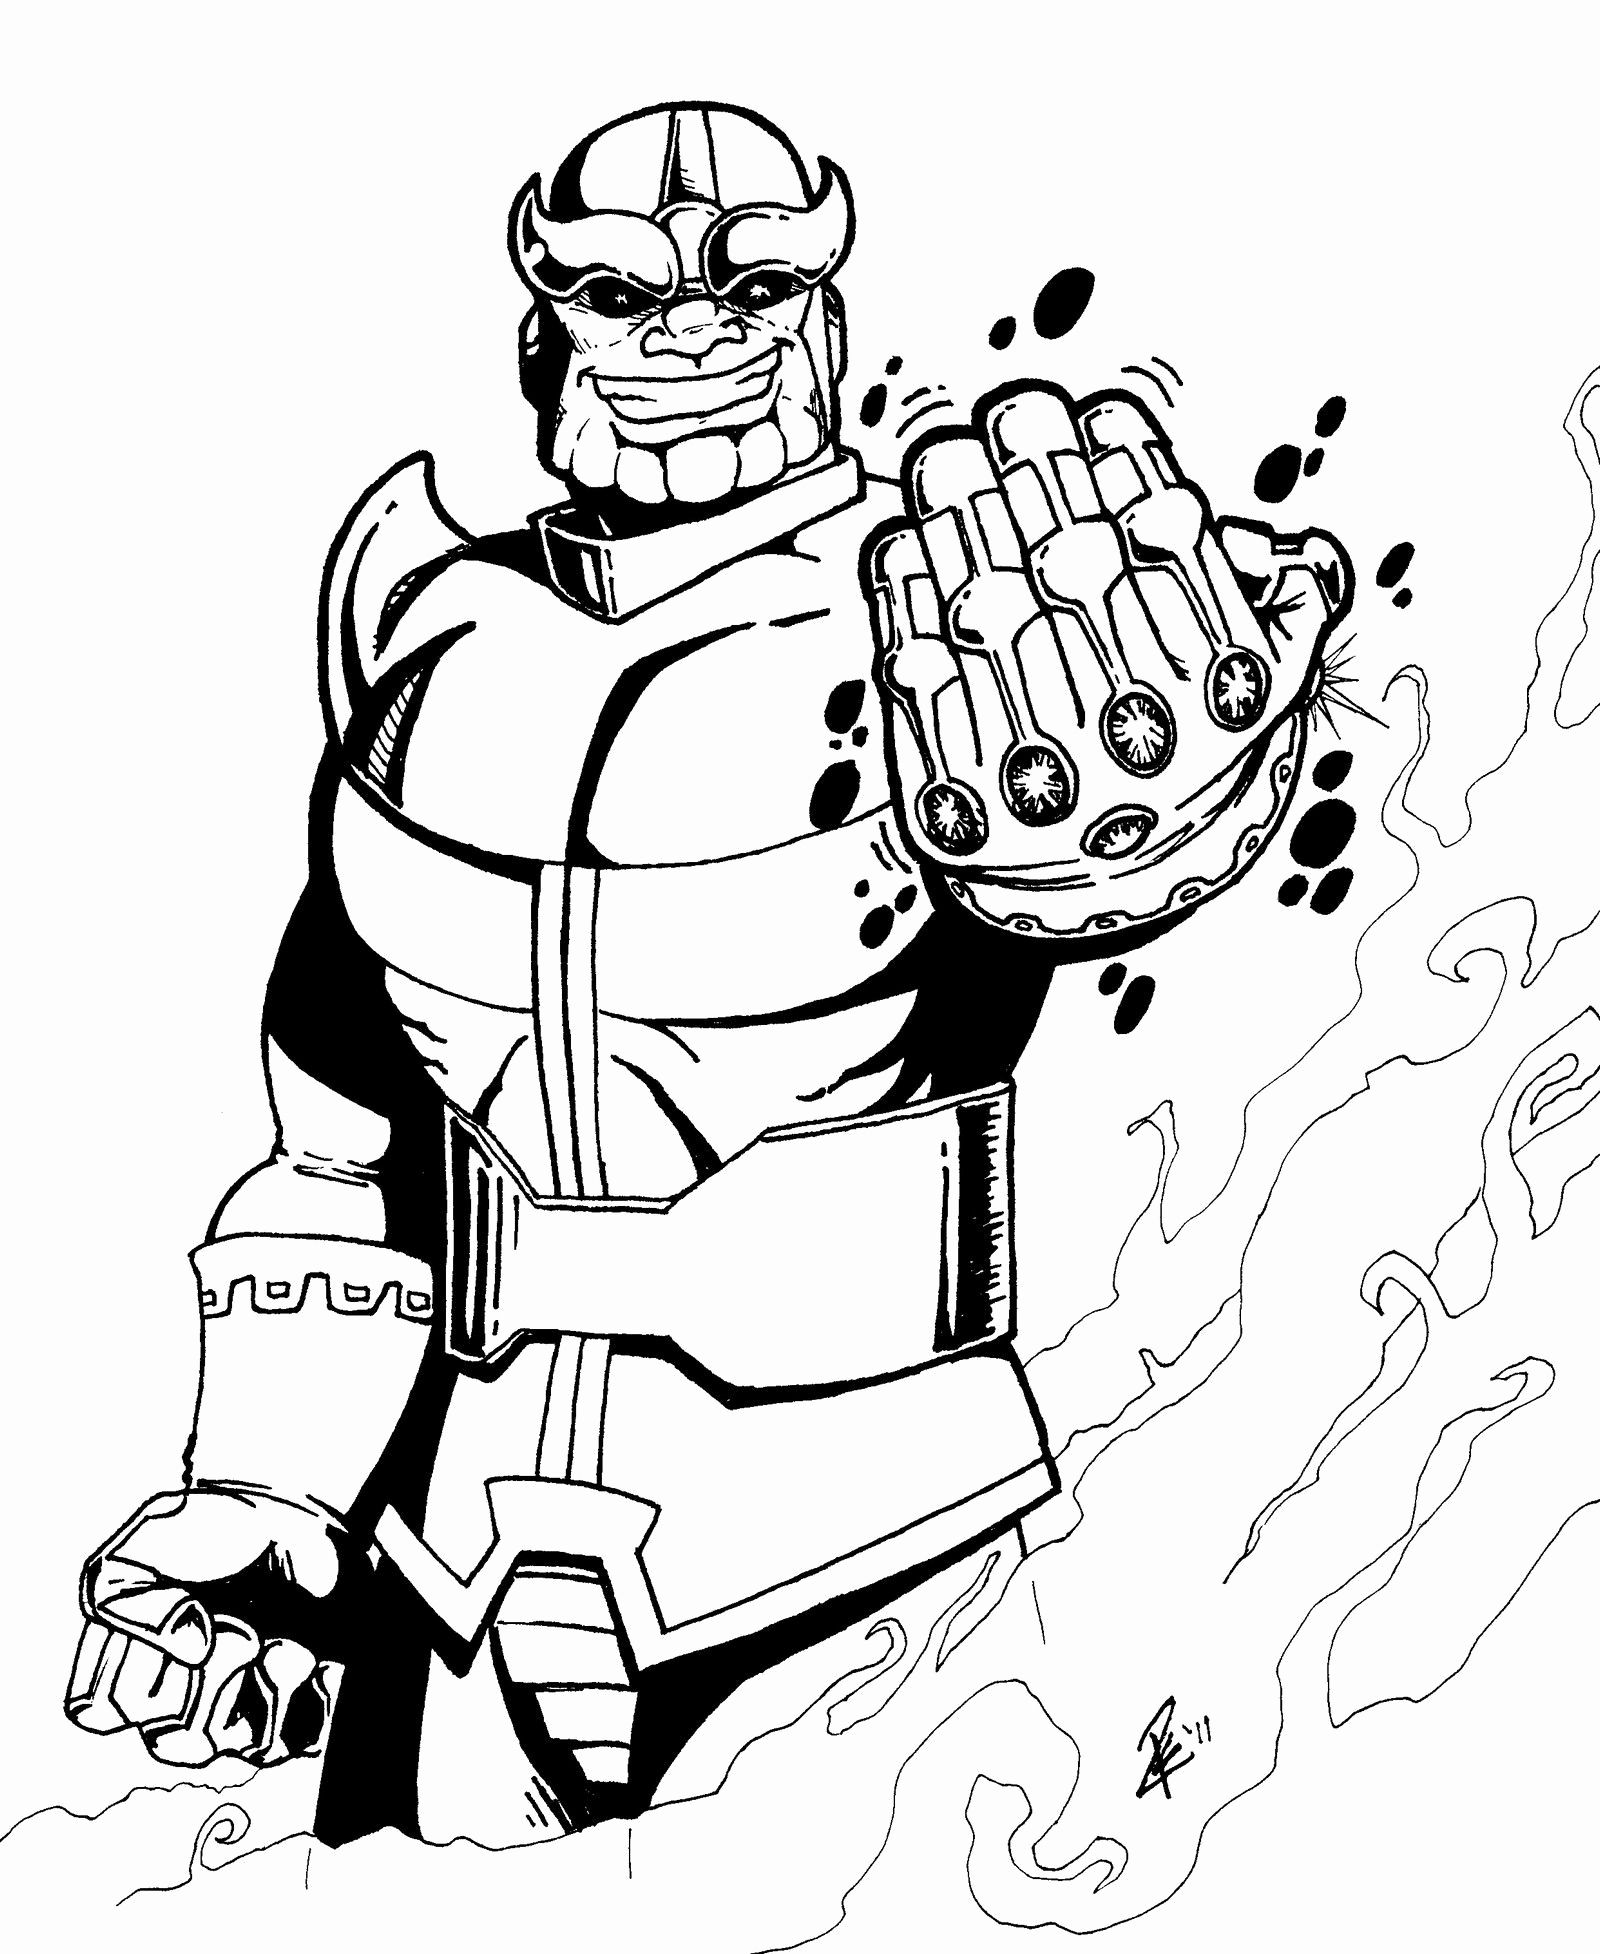 Printabe Coloring Pages Kids Avengers Avengers Coloring Avengers Coloring Pages Marvel Coloring